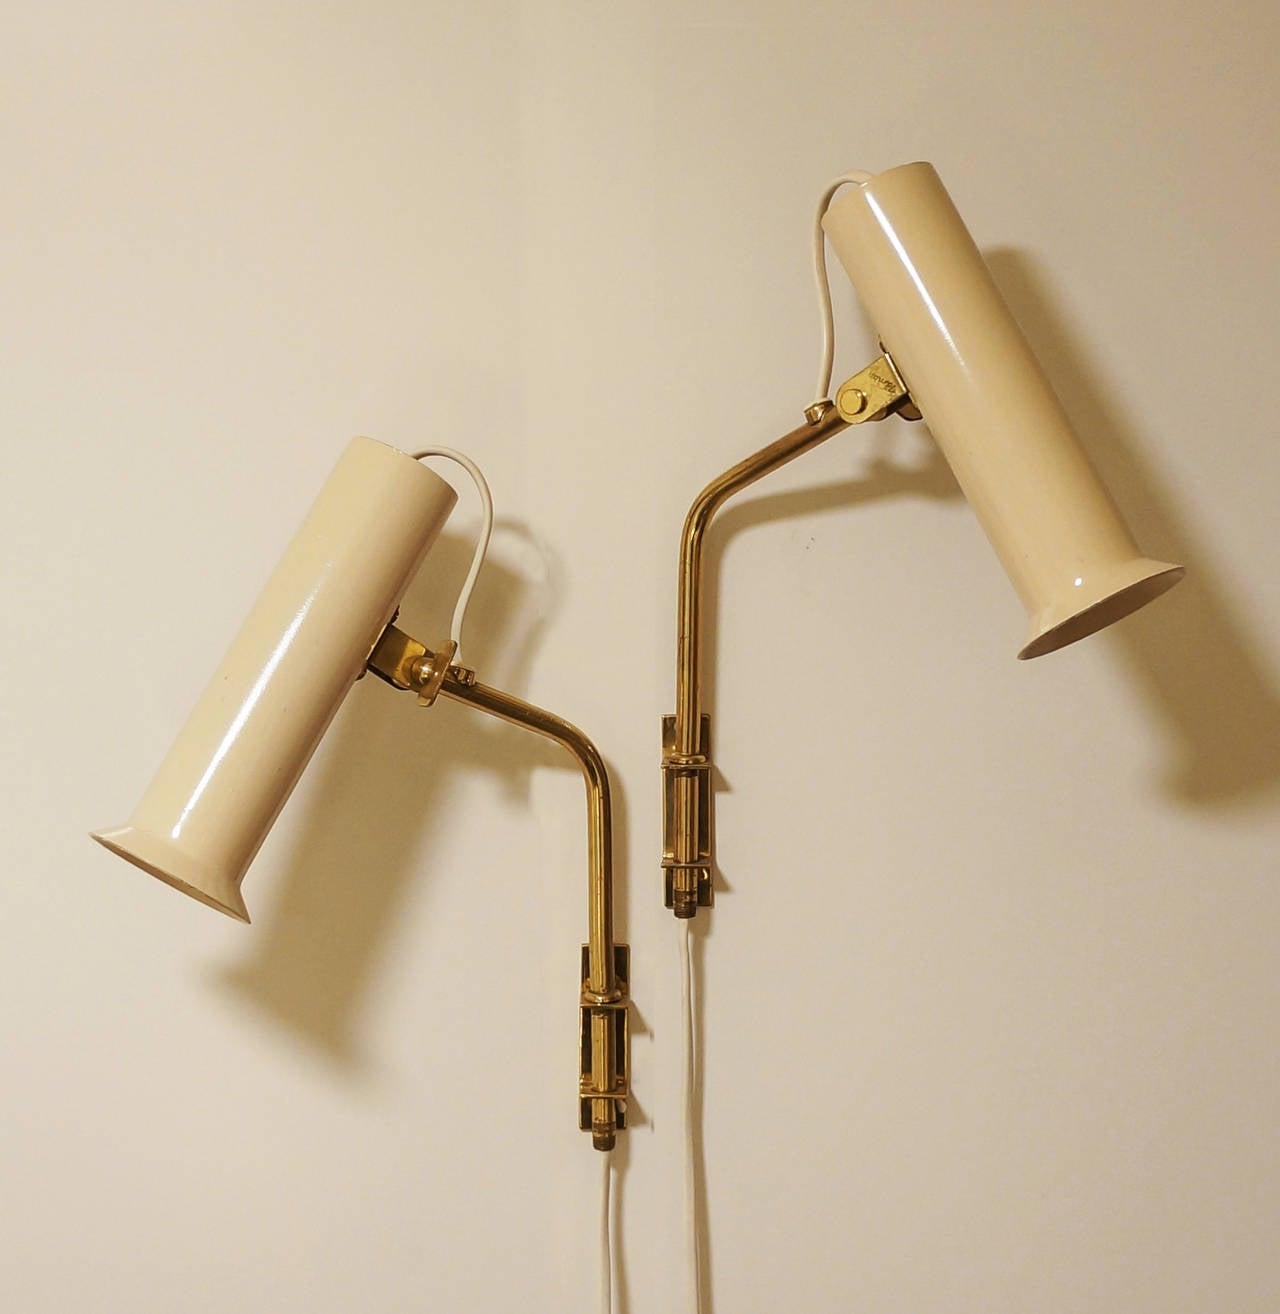 Tapio Wirkkala.  Reading lamps.  Idman, Finland, 1950s  Solid brass and painted metal. Measures: Height circa 30 cm, width circa 20 cm.  Both lamps impressed with manufacturer's label Idman as well as both wall mounts.  Shade and stem adjustable